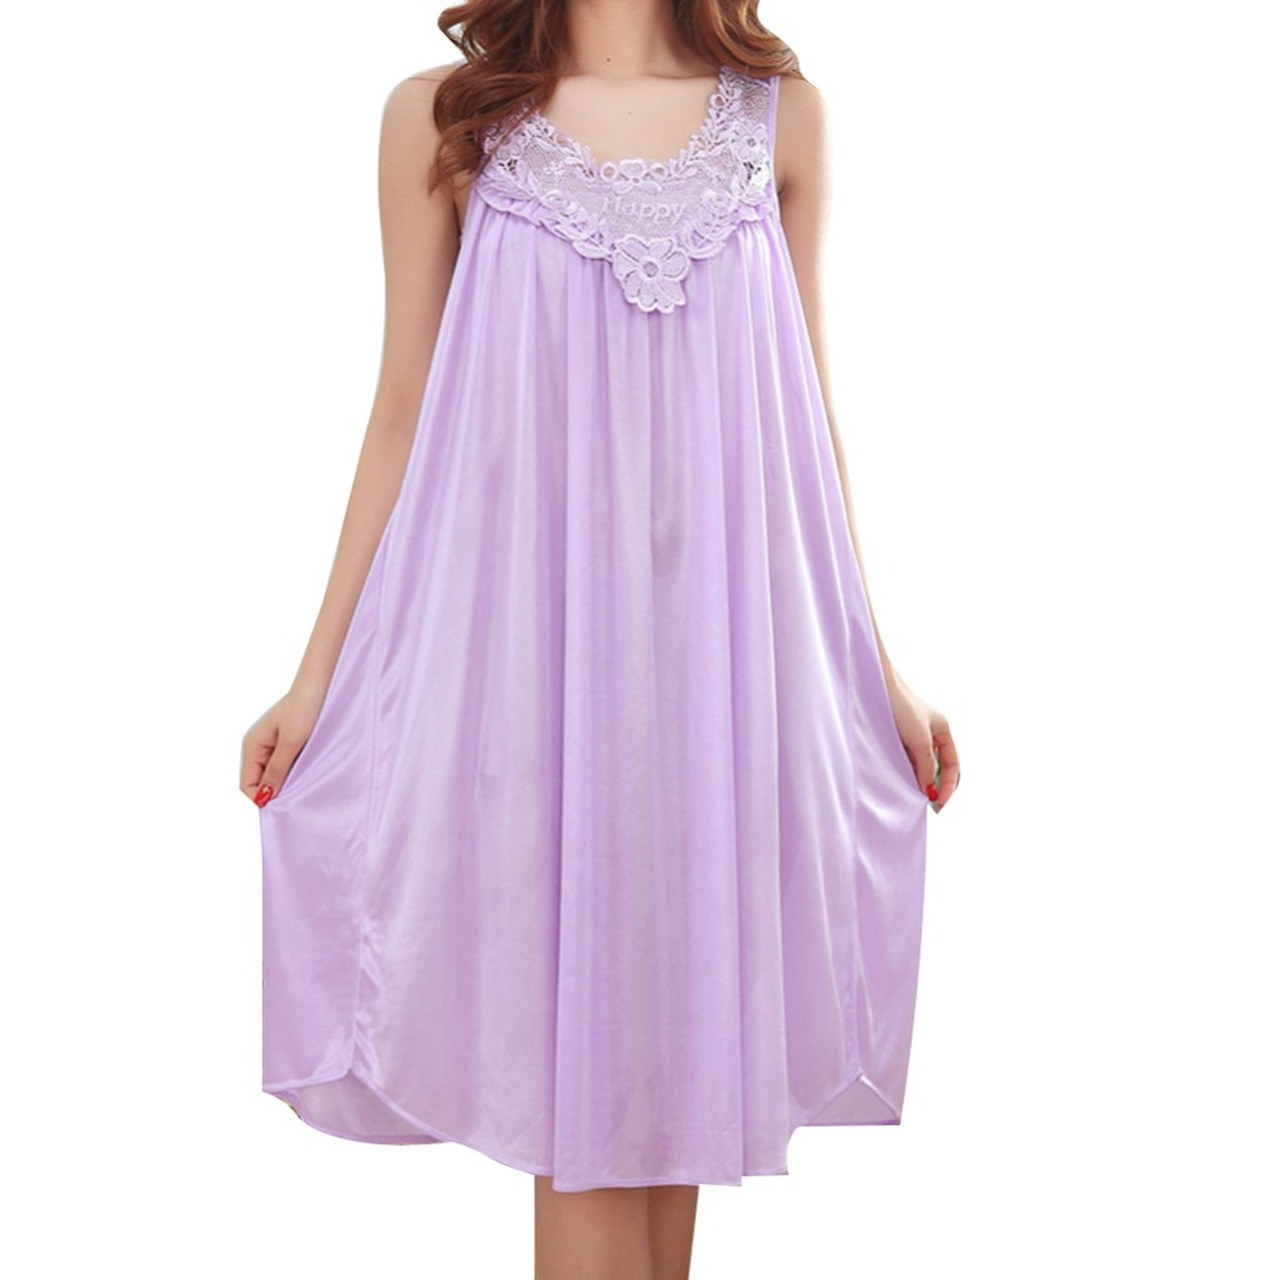 5257a1cb4f94 Wholesale 2017 Summer Imitation Silk Sexy Spaghetti Strap Nightgown Lace  Appliques Hem Home Wear Solid Nightgowns ...